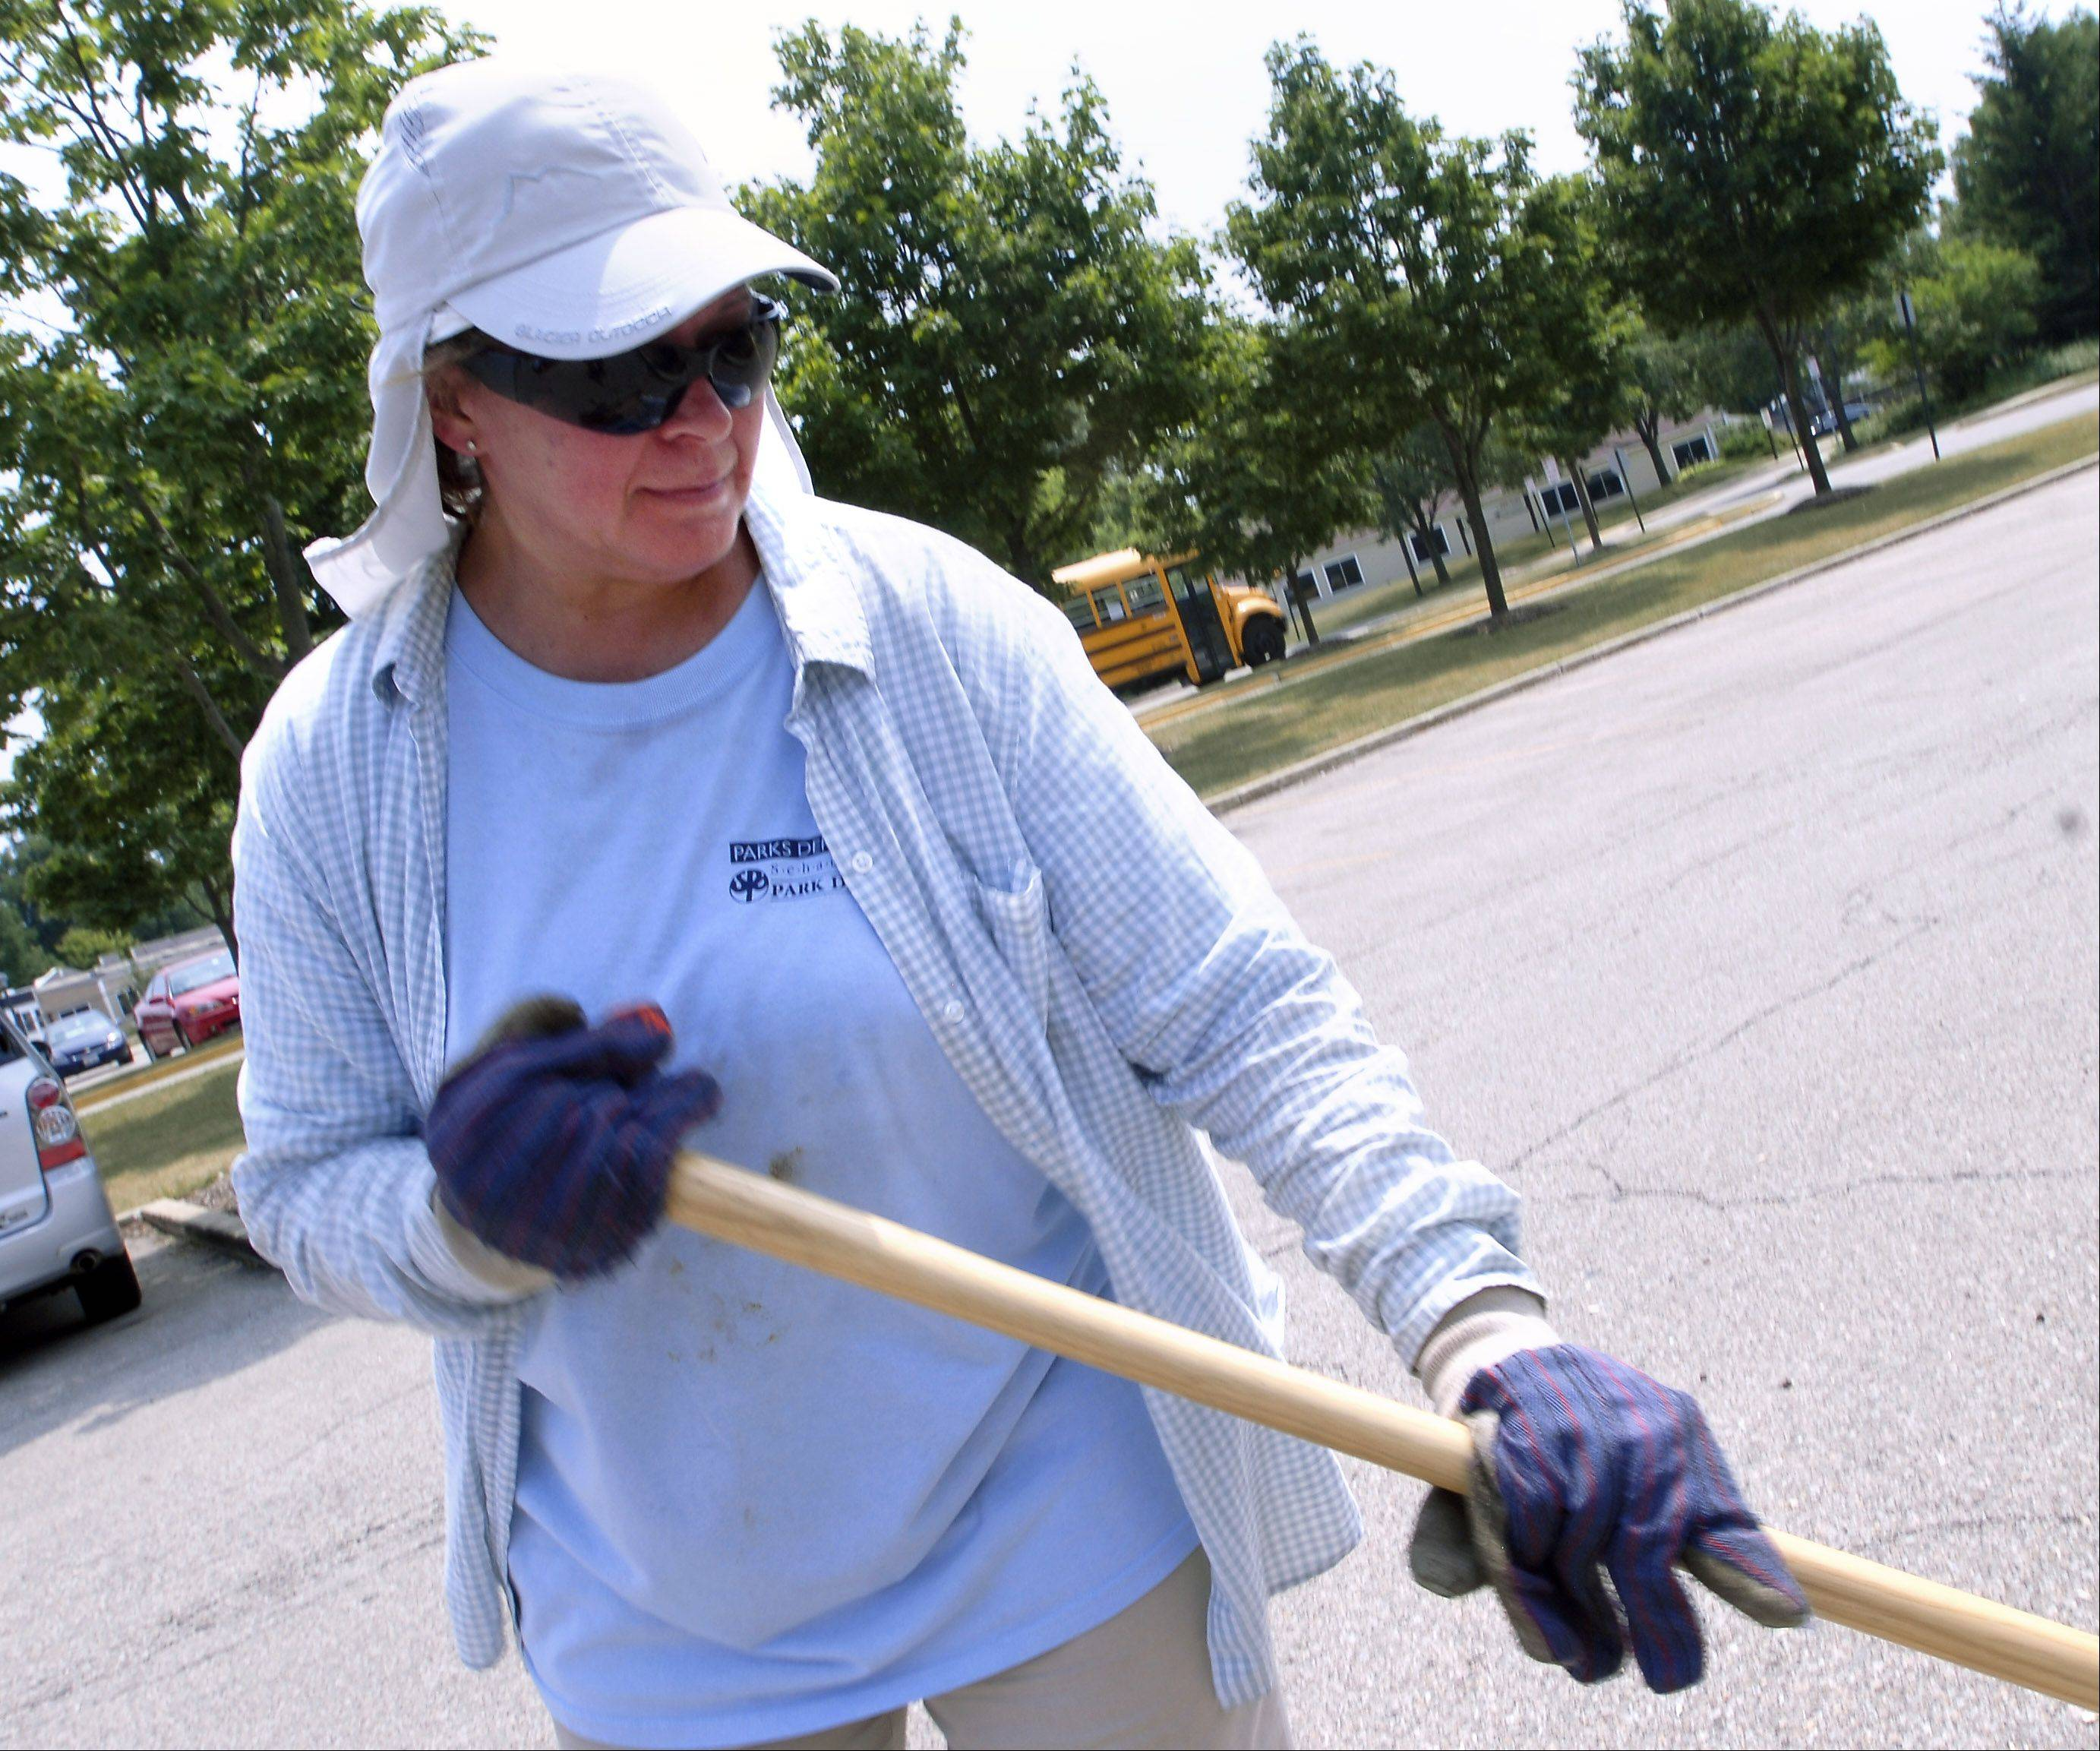 Schaumburg Park District employee Maria Puga carries on with her task of raking on Tuesday afternoon.